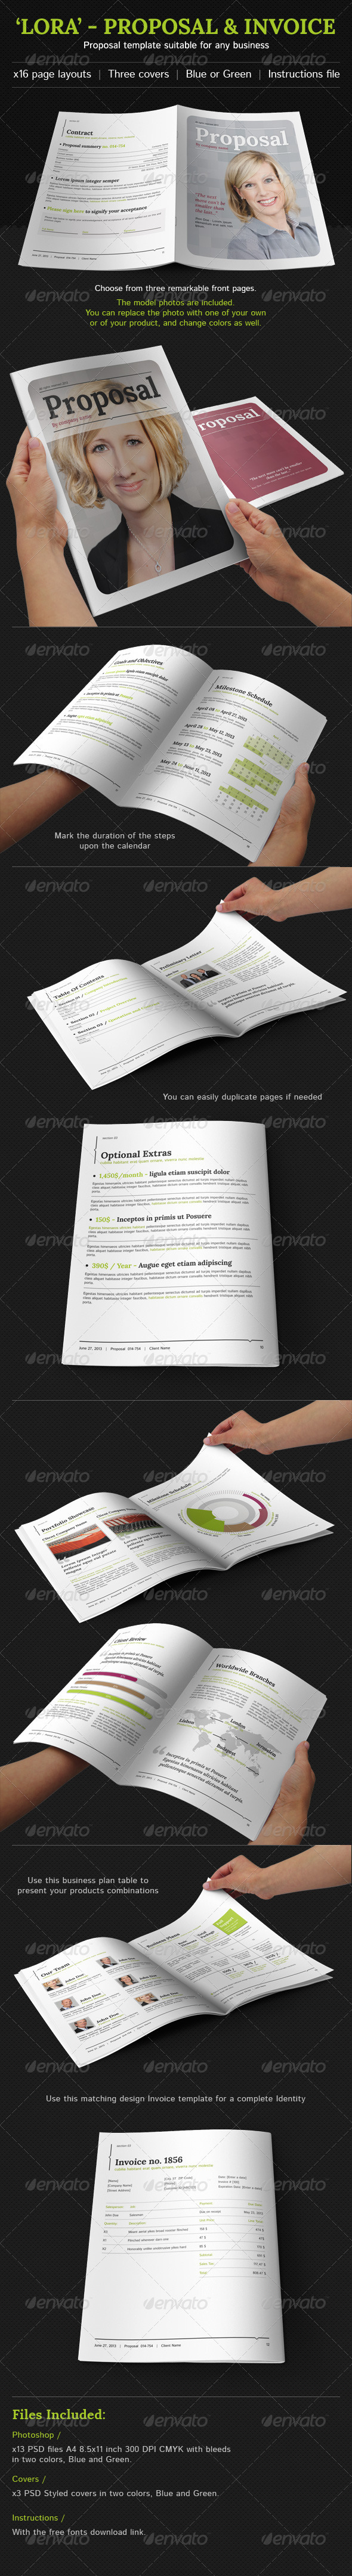 GraphicRiver Proposal And Invoice Suitable For Any Business 3958327